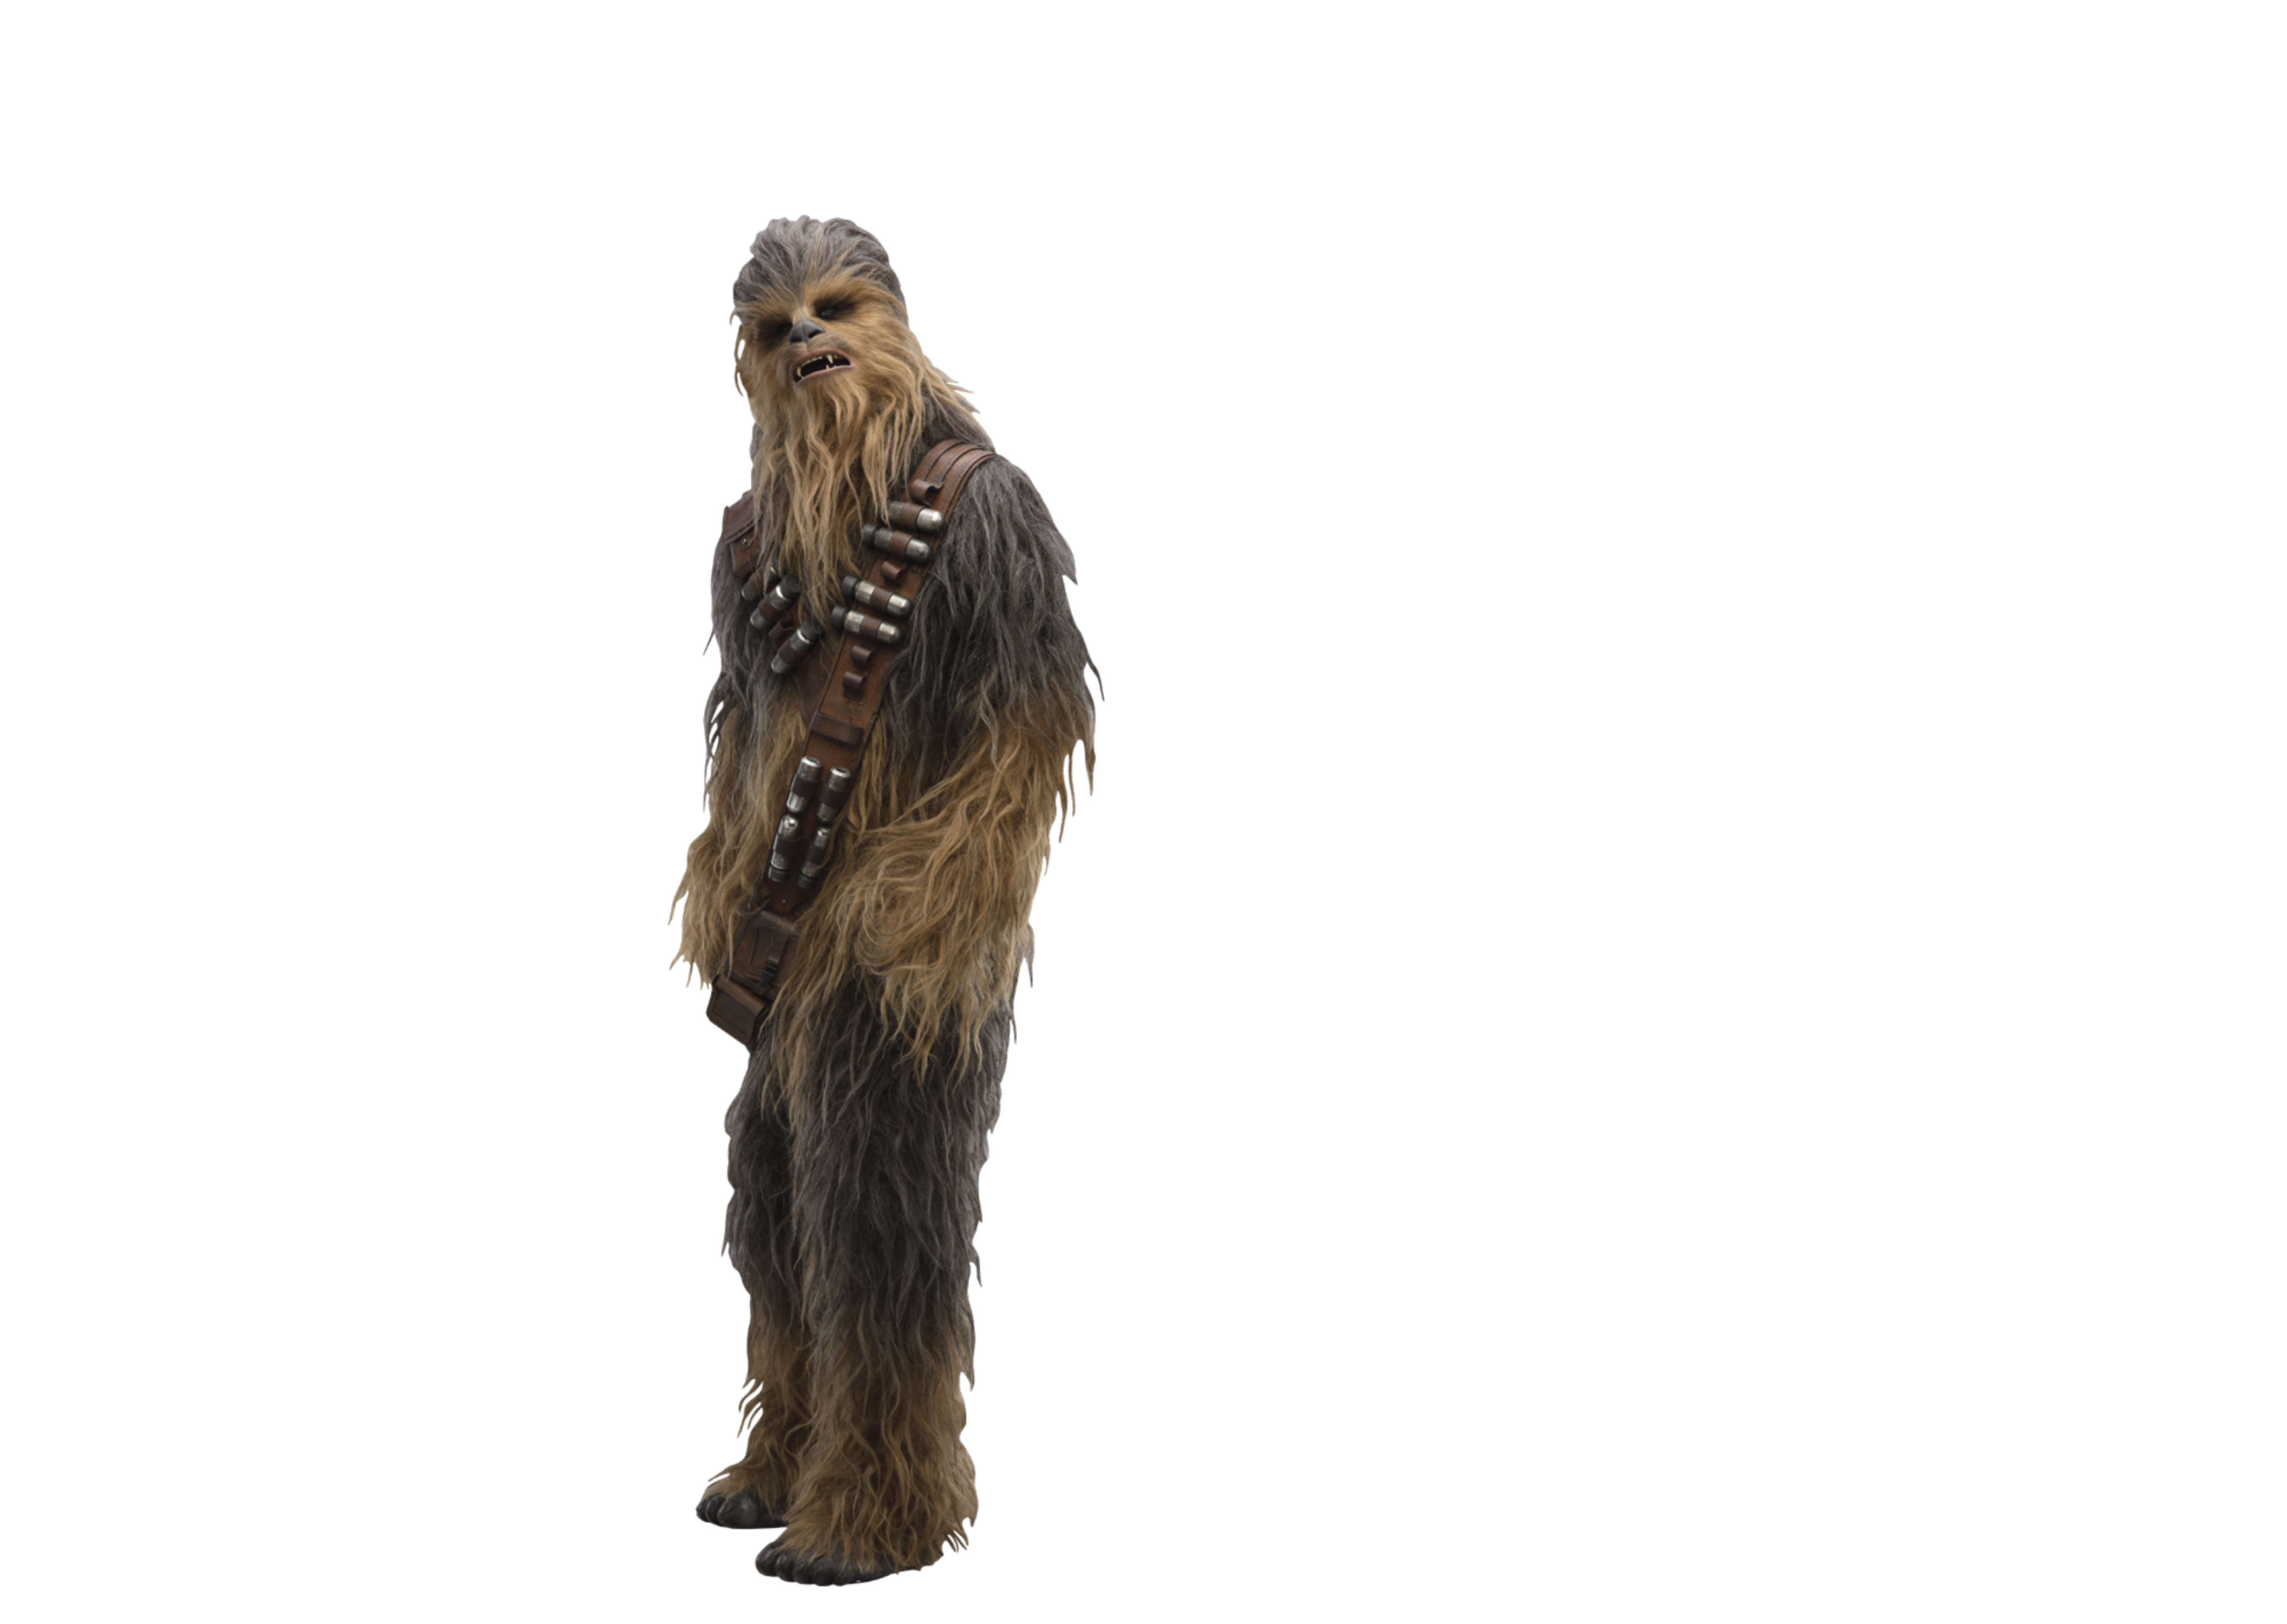 Chewbacca In Solo A Star Wars Story Movie 2018, Hd Movies -4317